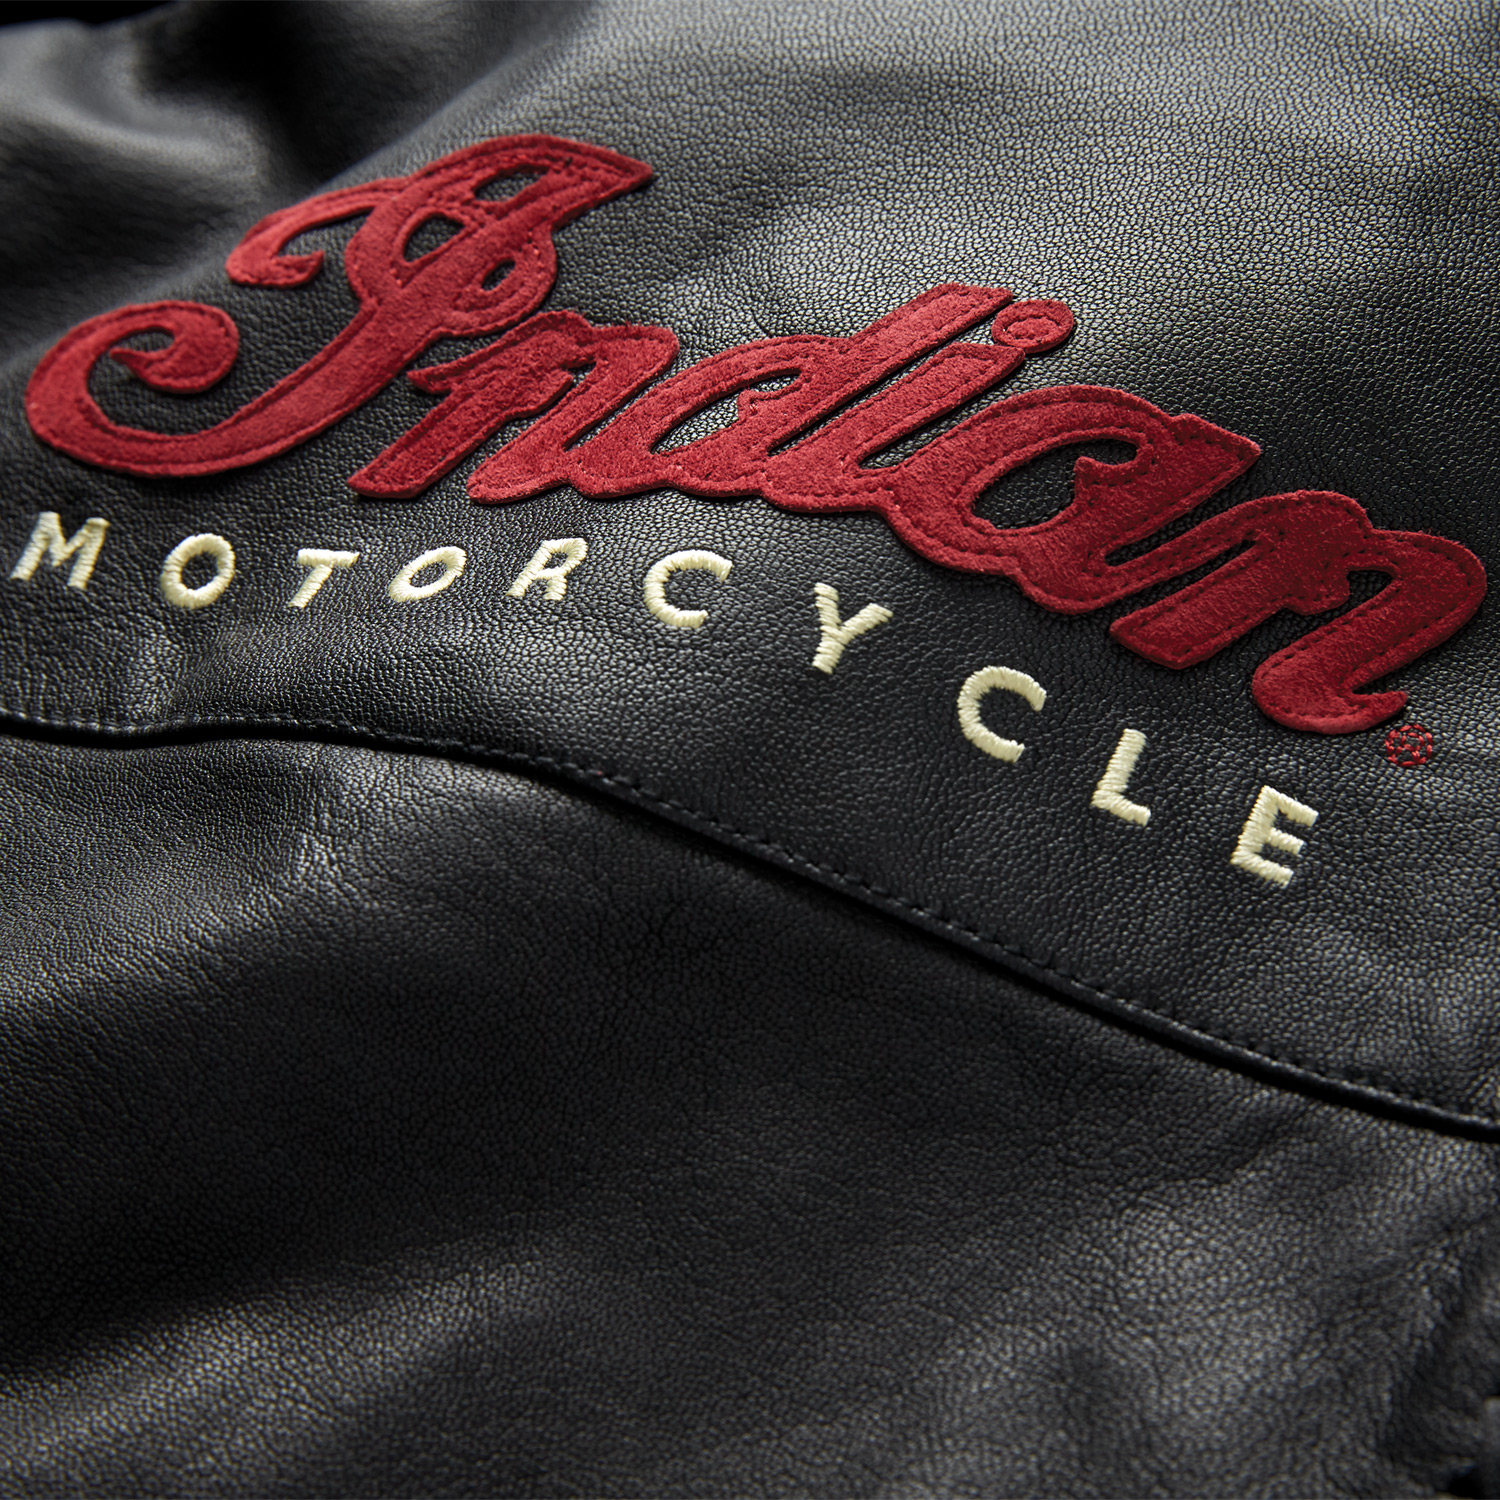 miniature 15 - Indian Motorcycle Women's Leather Charlotte Casual Jacket, Black